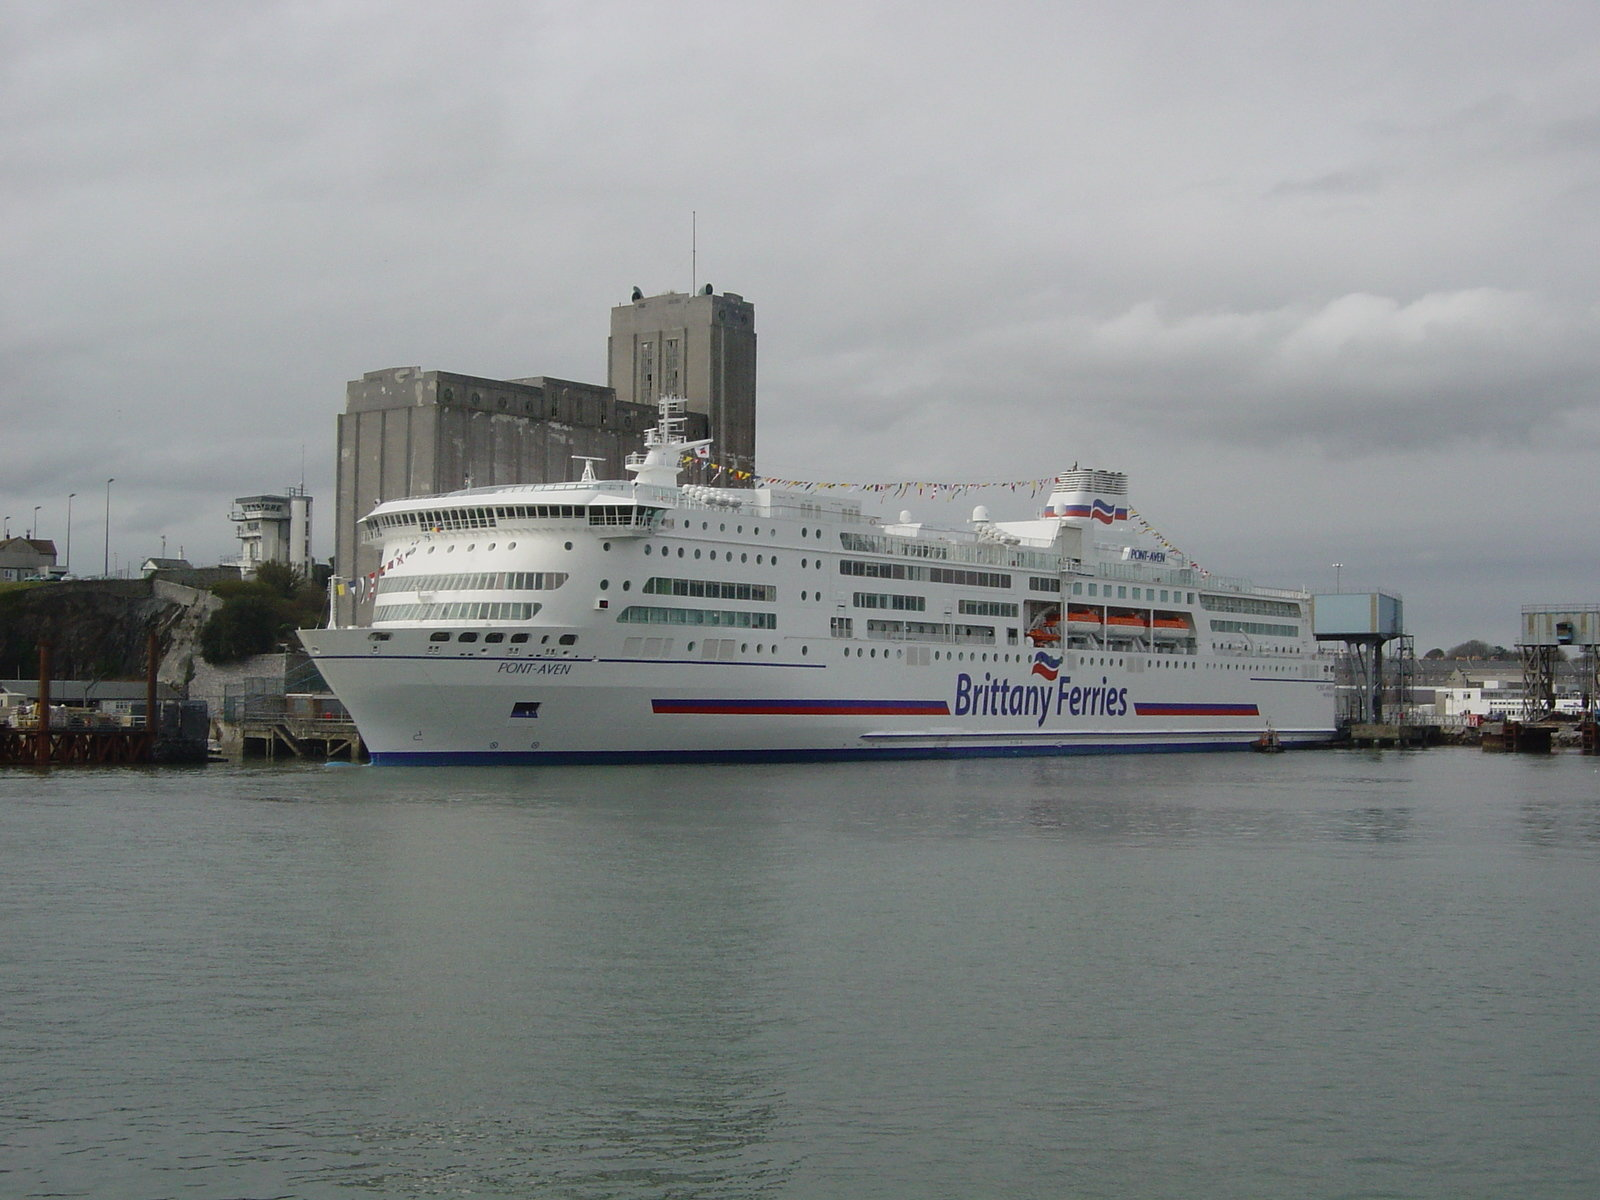 Pont-Aven - The Maiden Voyage